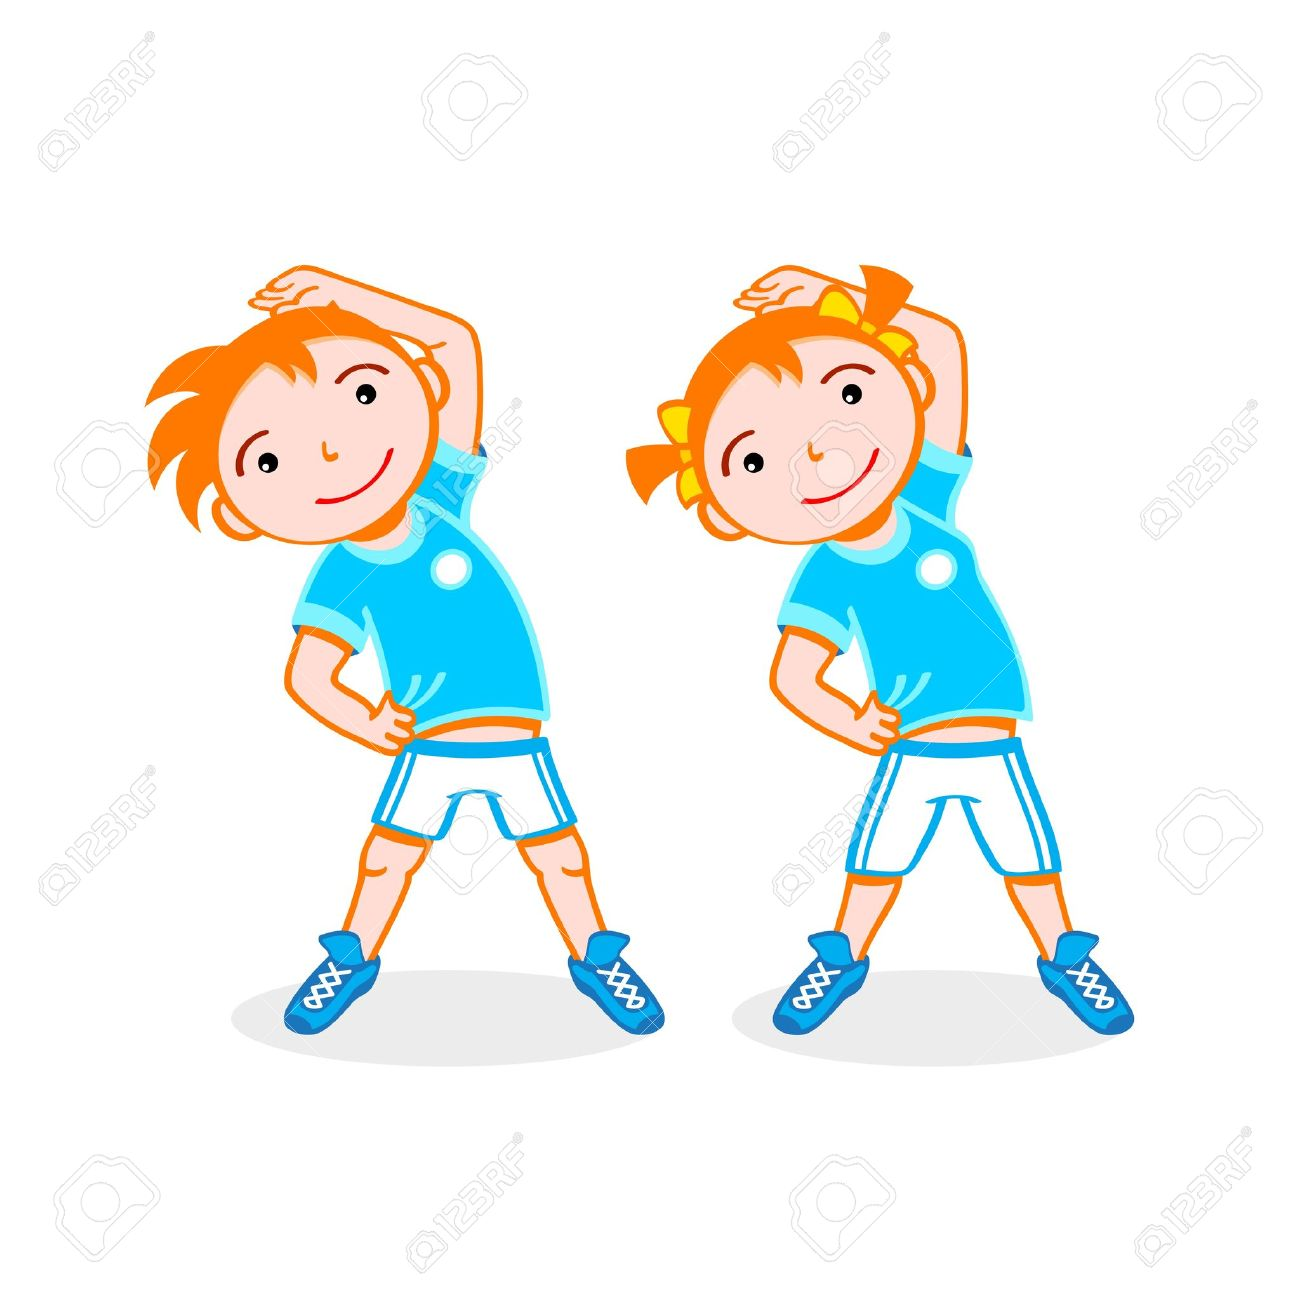 Exercise Cartoon Images | Free download on ClipArtMag